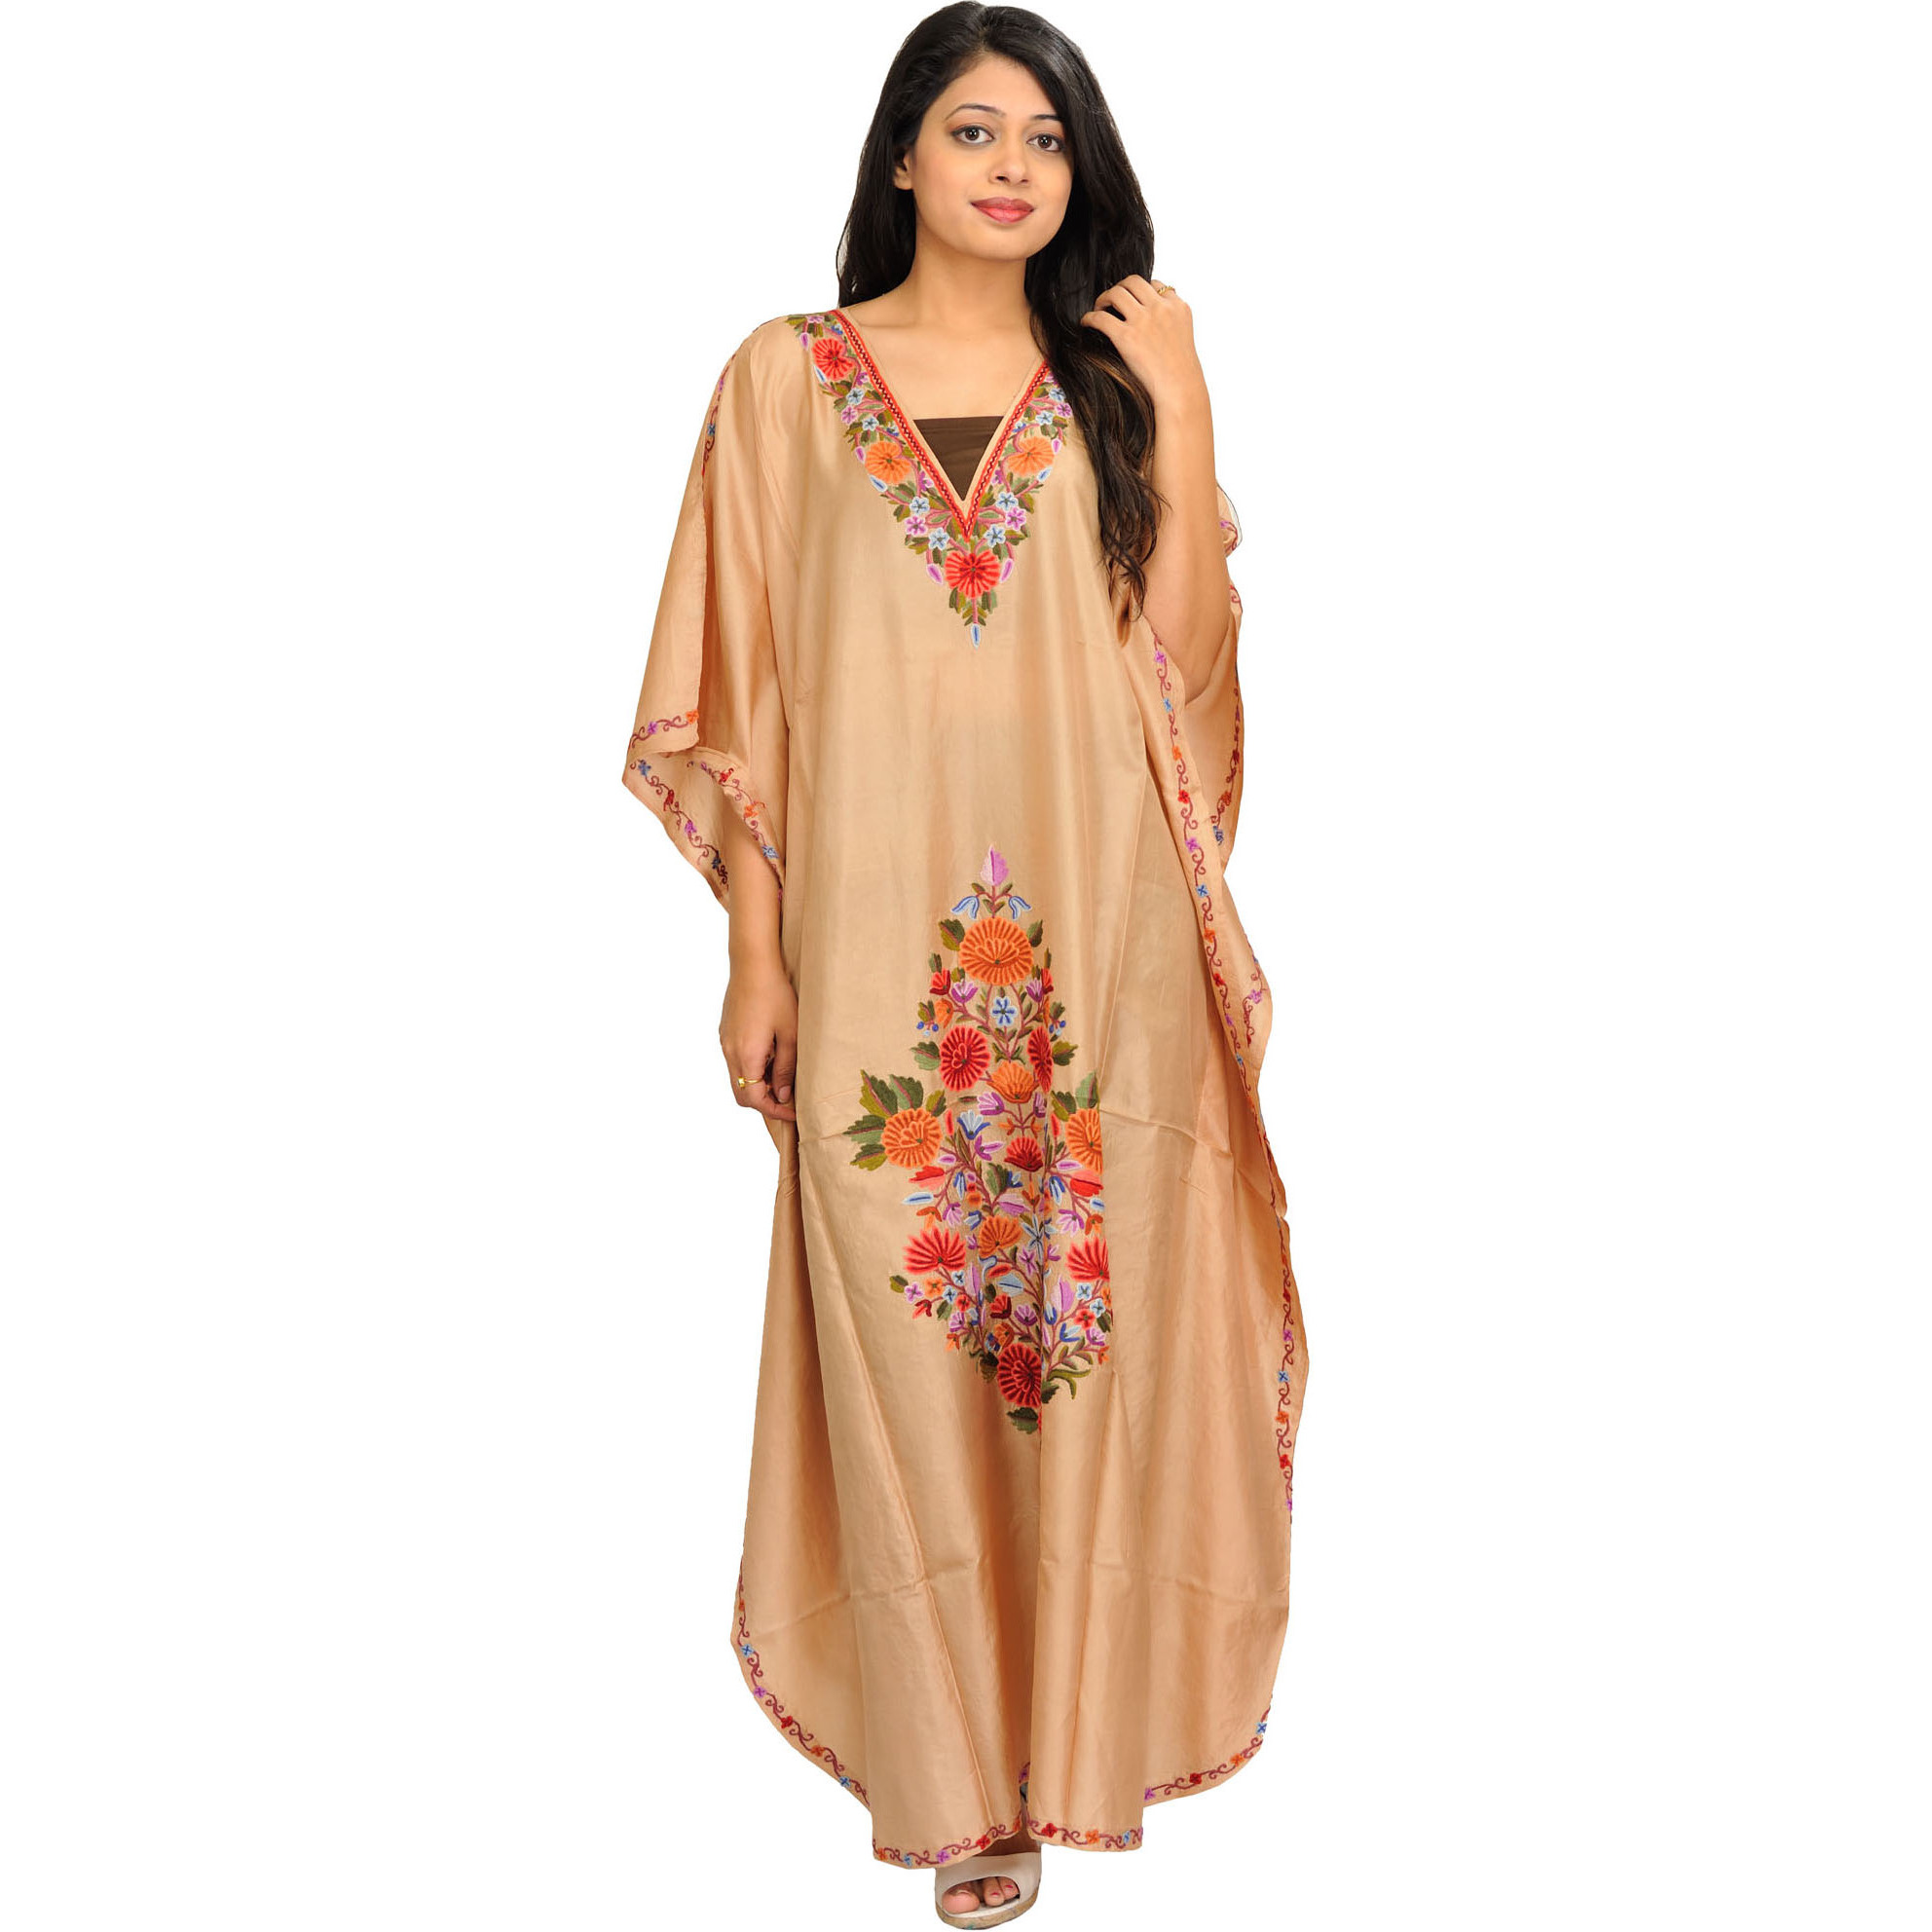 Desert-Dust Kaftan from Kashmir with Ari-Embroidered Flowers by Hand